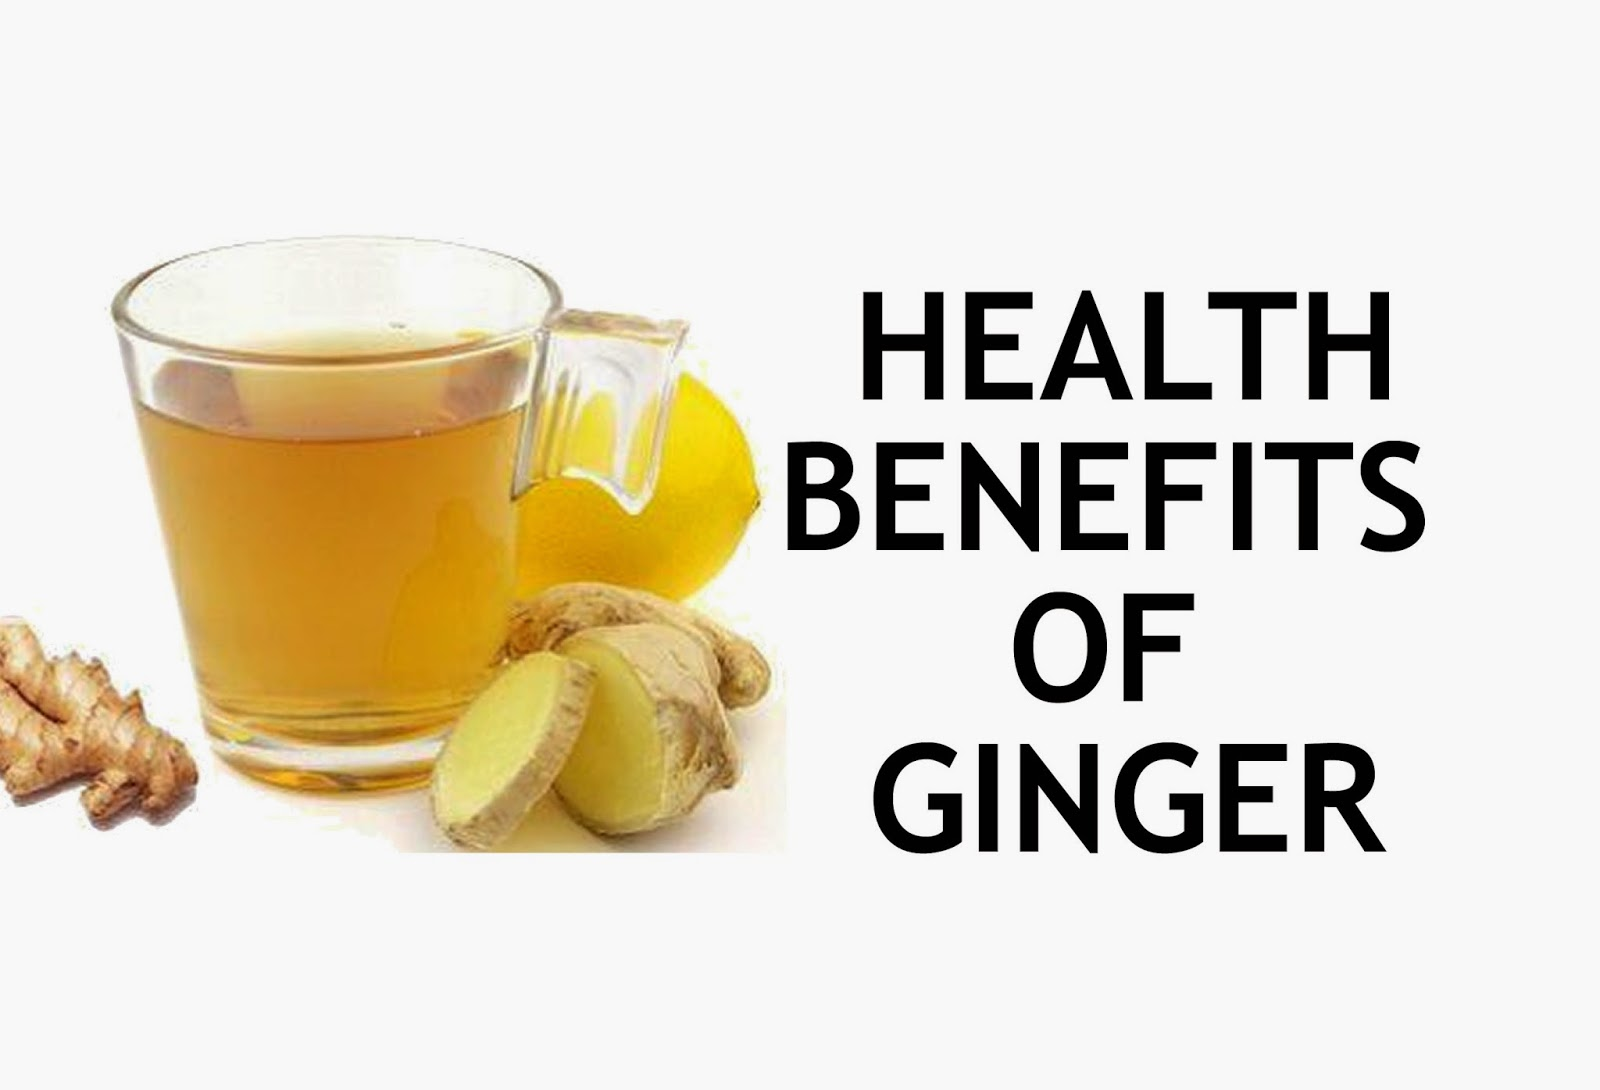 Ginger Root Health Benefits - Drinks, Recipes and More